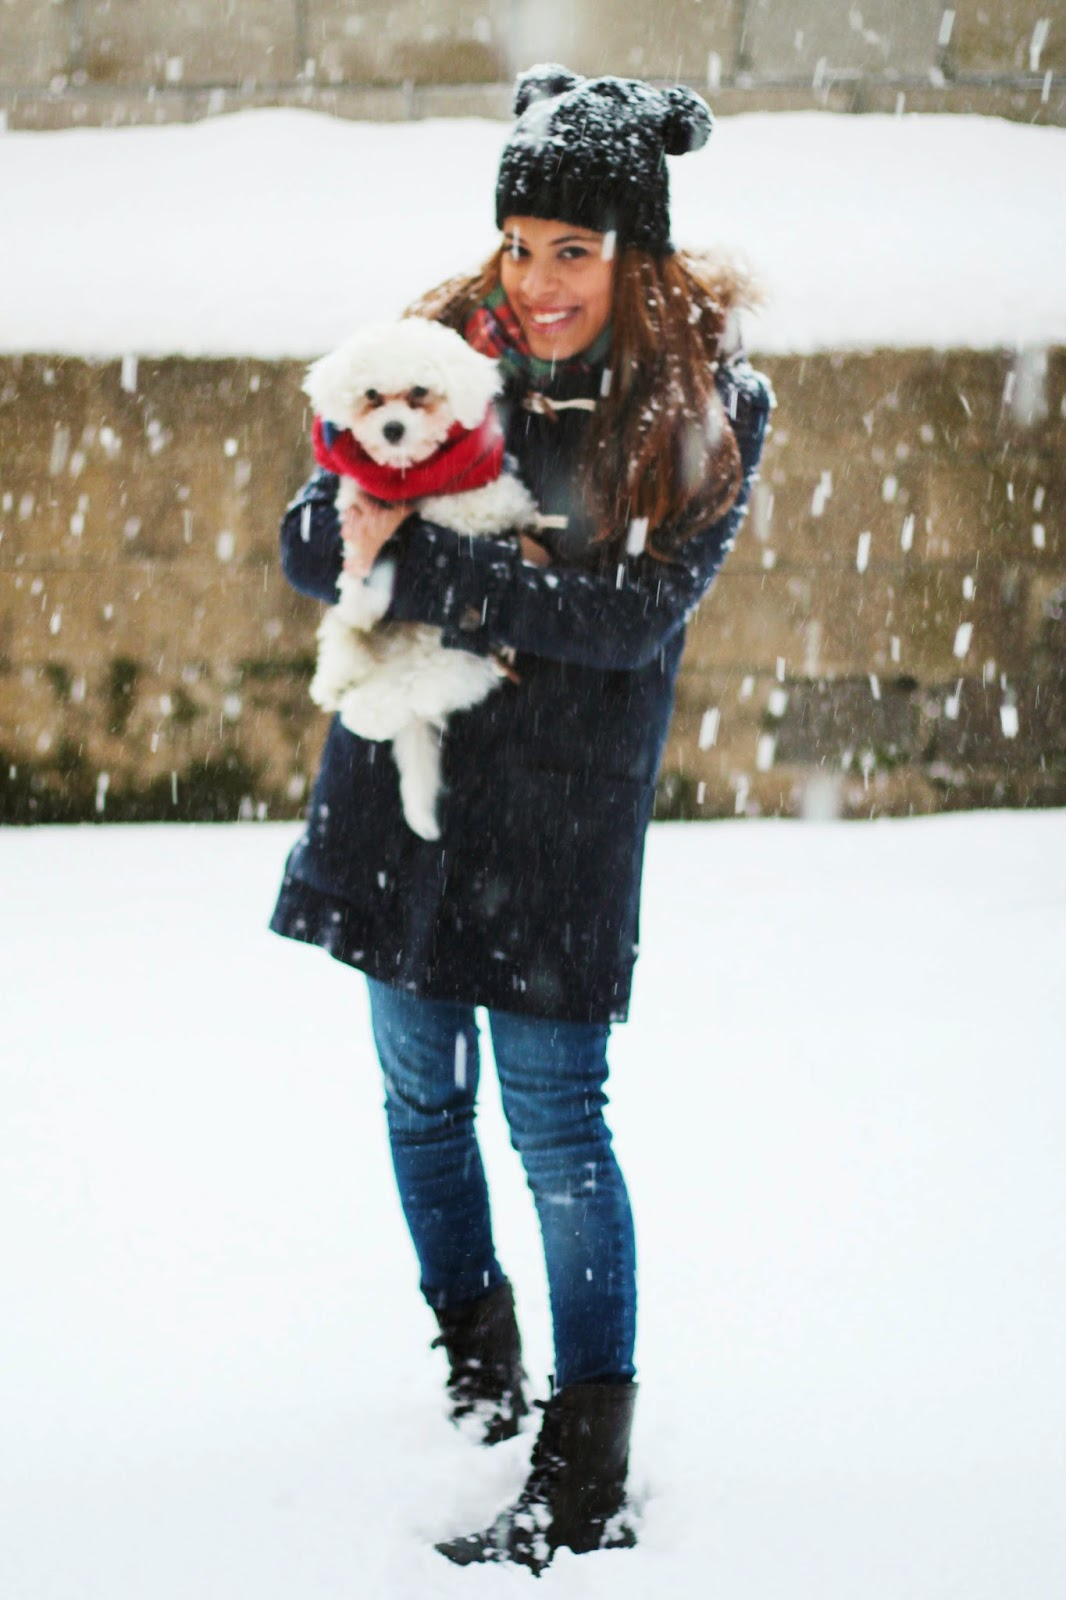 snow day, winter style, winter, cold, oldnavy, target, steve madden, toggle coat, coat, scarf, blanket scarf, plaid, combat boots, boots, puppy, maltese, new york, juno, new york city, fashion, blizzard, beanie, double pom beanie hat, hat, fashion bloggers, blogger, bloggers, instagram, fun, family, weather, cold, cool,